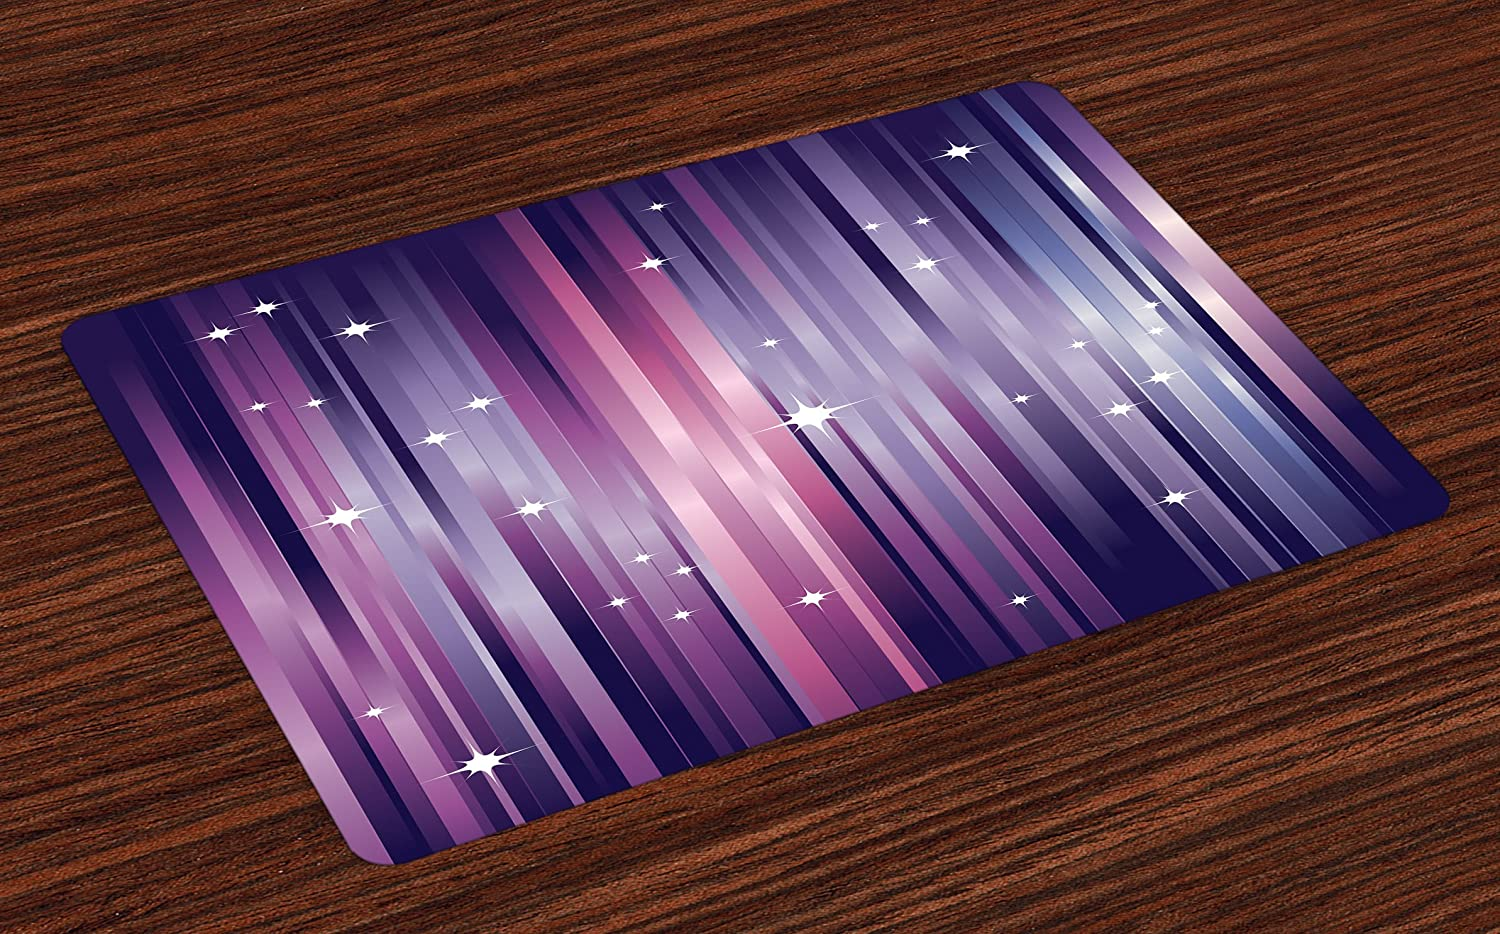 Ambesonne Eggplant Place Mats Set of 4, Abstract Colourful Beams Backdrop with White Stars Space Inspired Purple Lines, Washable Fabric Placemats for Dining Room Kitchen Table Decor, Multicolor